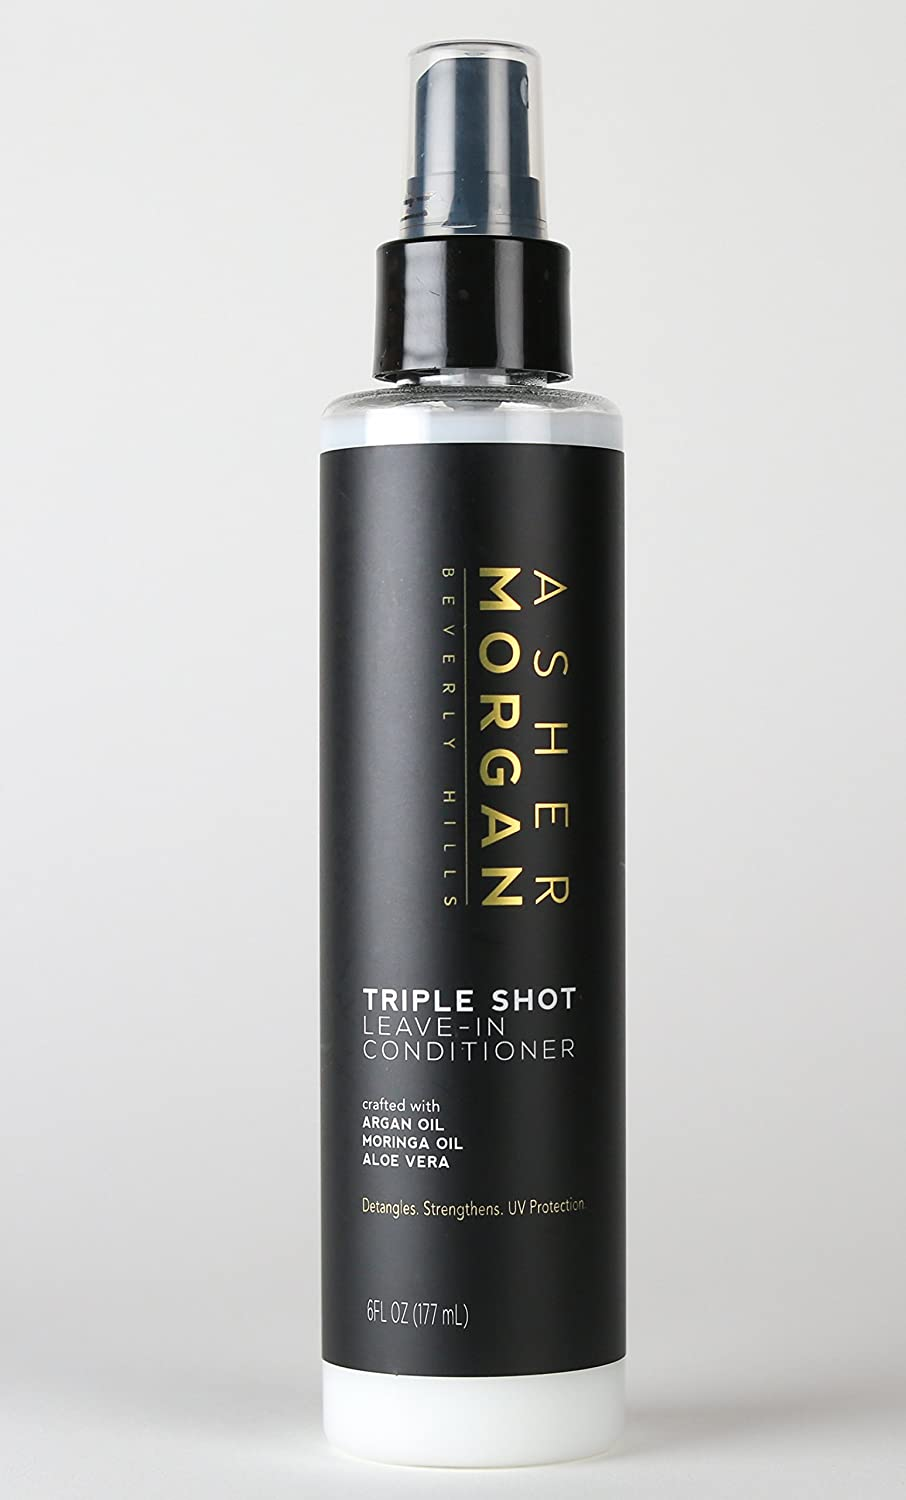 Asher Morgan Beverly Hills: Triple Shot Leave-In Conditioner and Detangler Advanced Medical Research